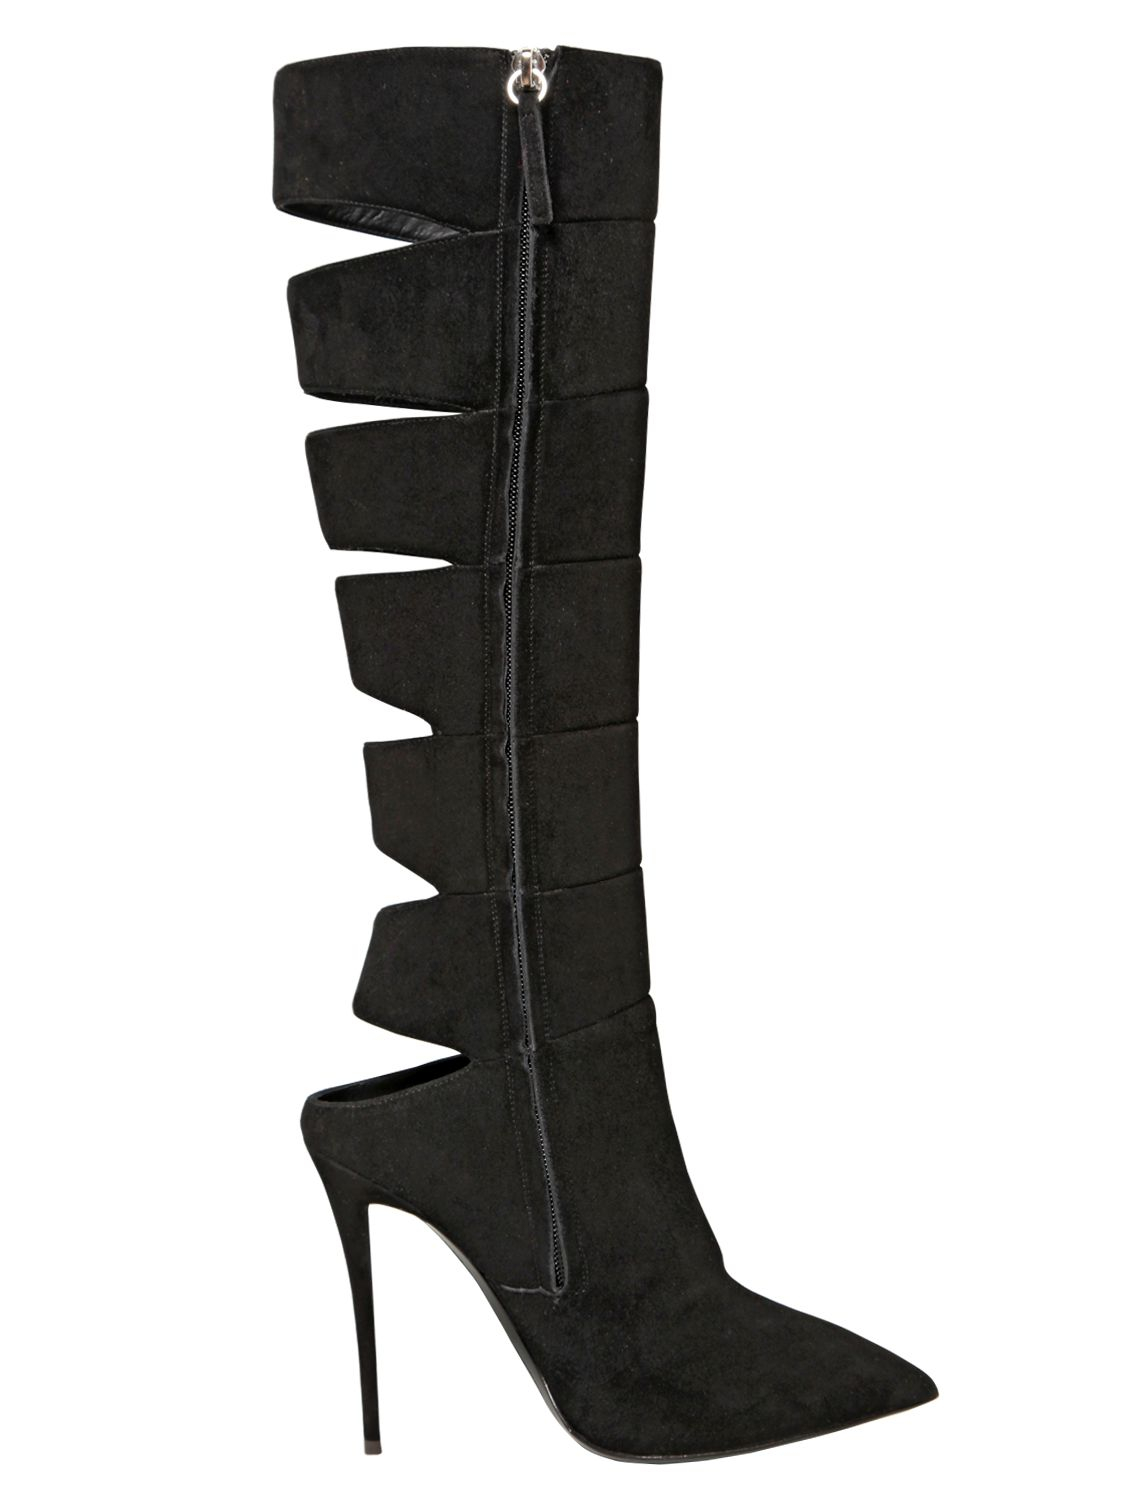 giuseppe zanotti 110mm cut out suede boots in black lyst